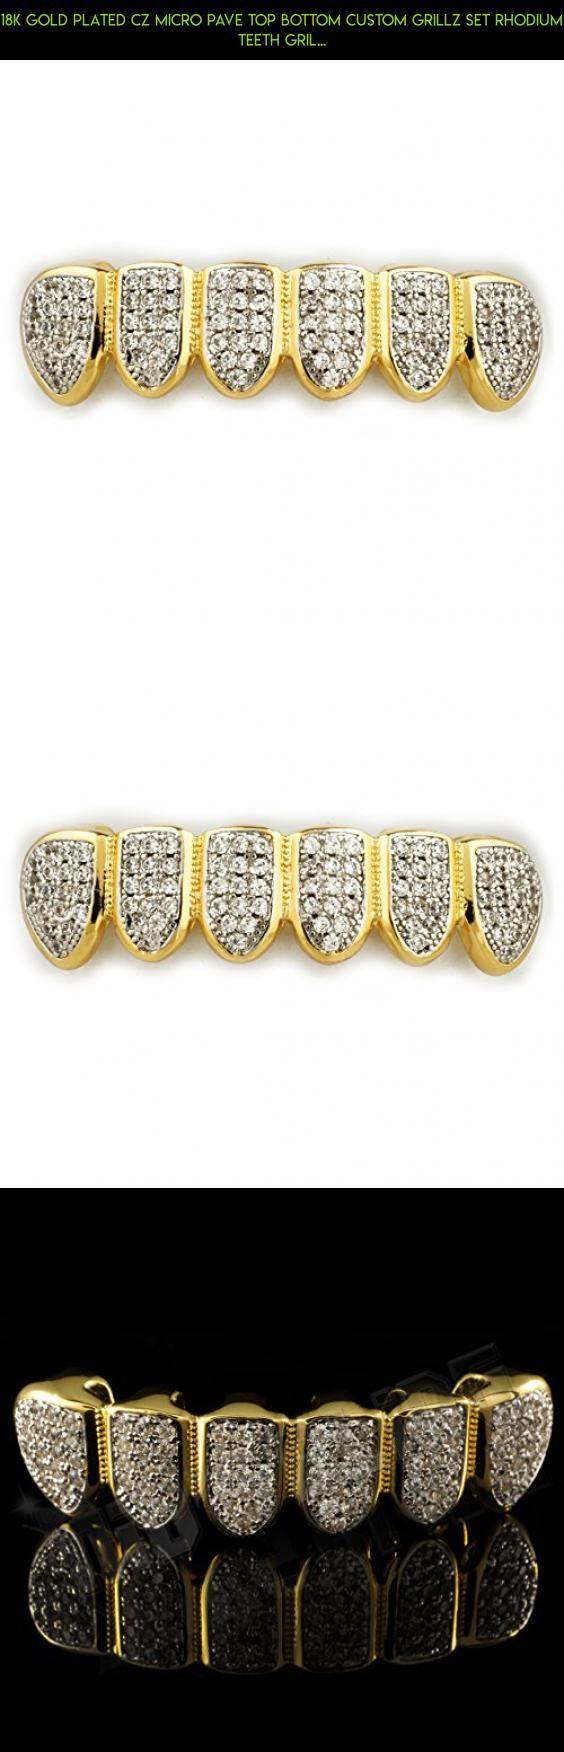 18K Gold Plated CZ Micro Pave Top Bottom CUSTOM GRILLZ SET Rhodium Teeth Gril... #shopping #parts #diamond #tech #kit #plans #camera #grills #gadgets #products #racing #technology #drone #teeth #fpv